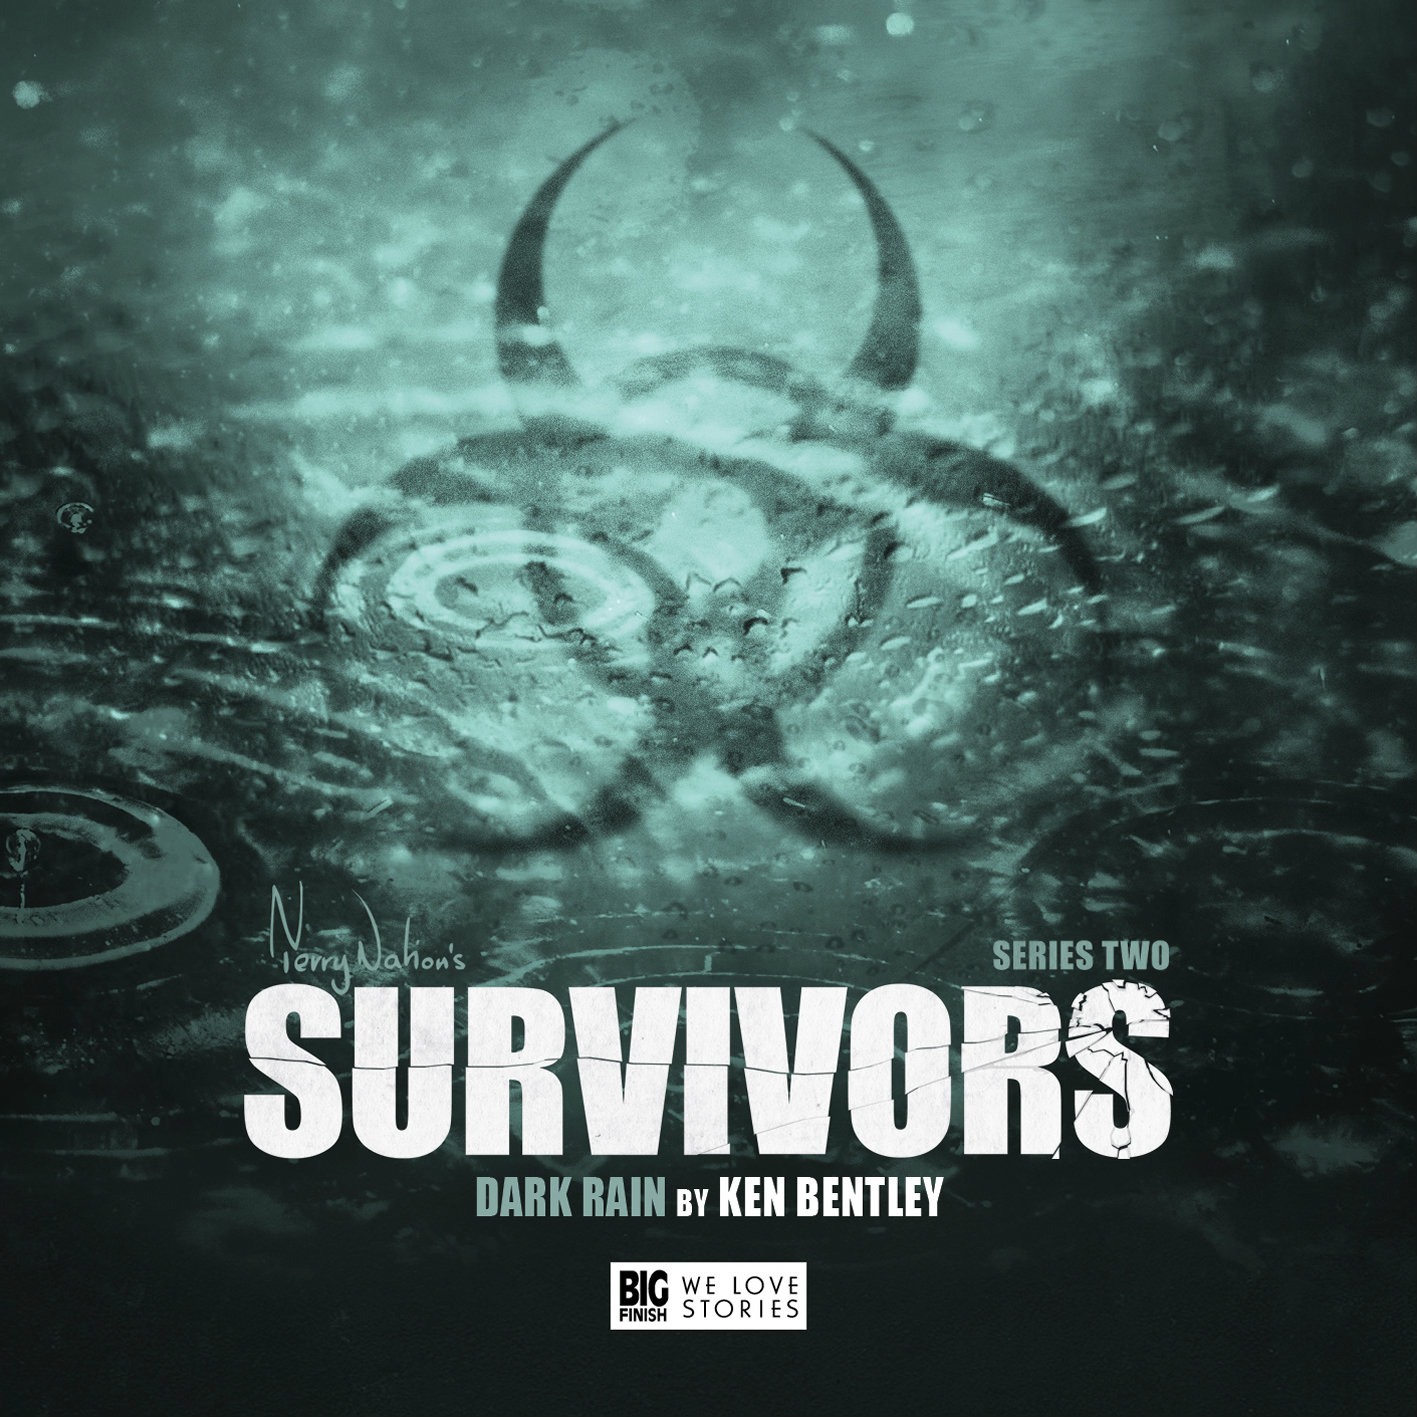 Episode image for Survivors 2:1 Dark Rain